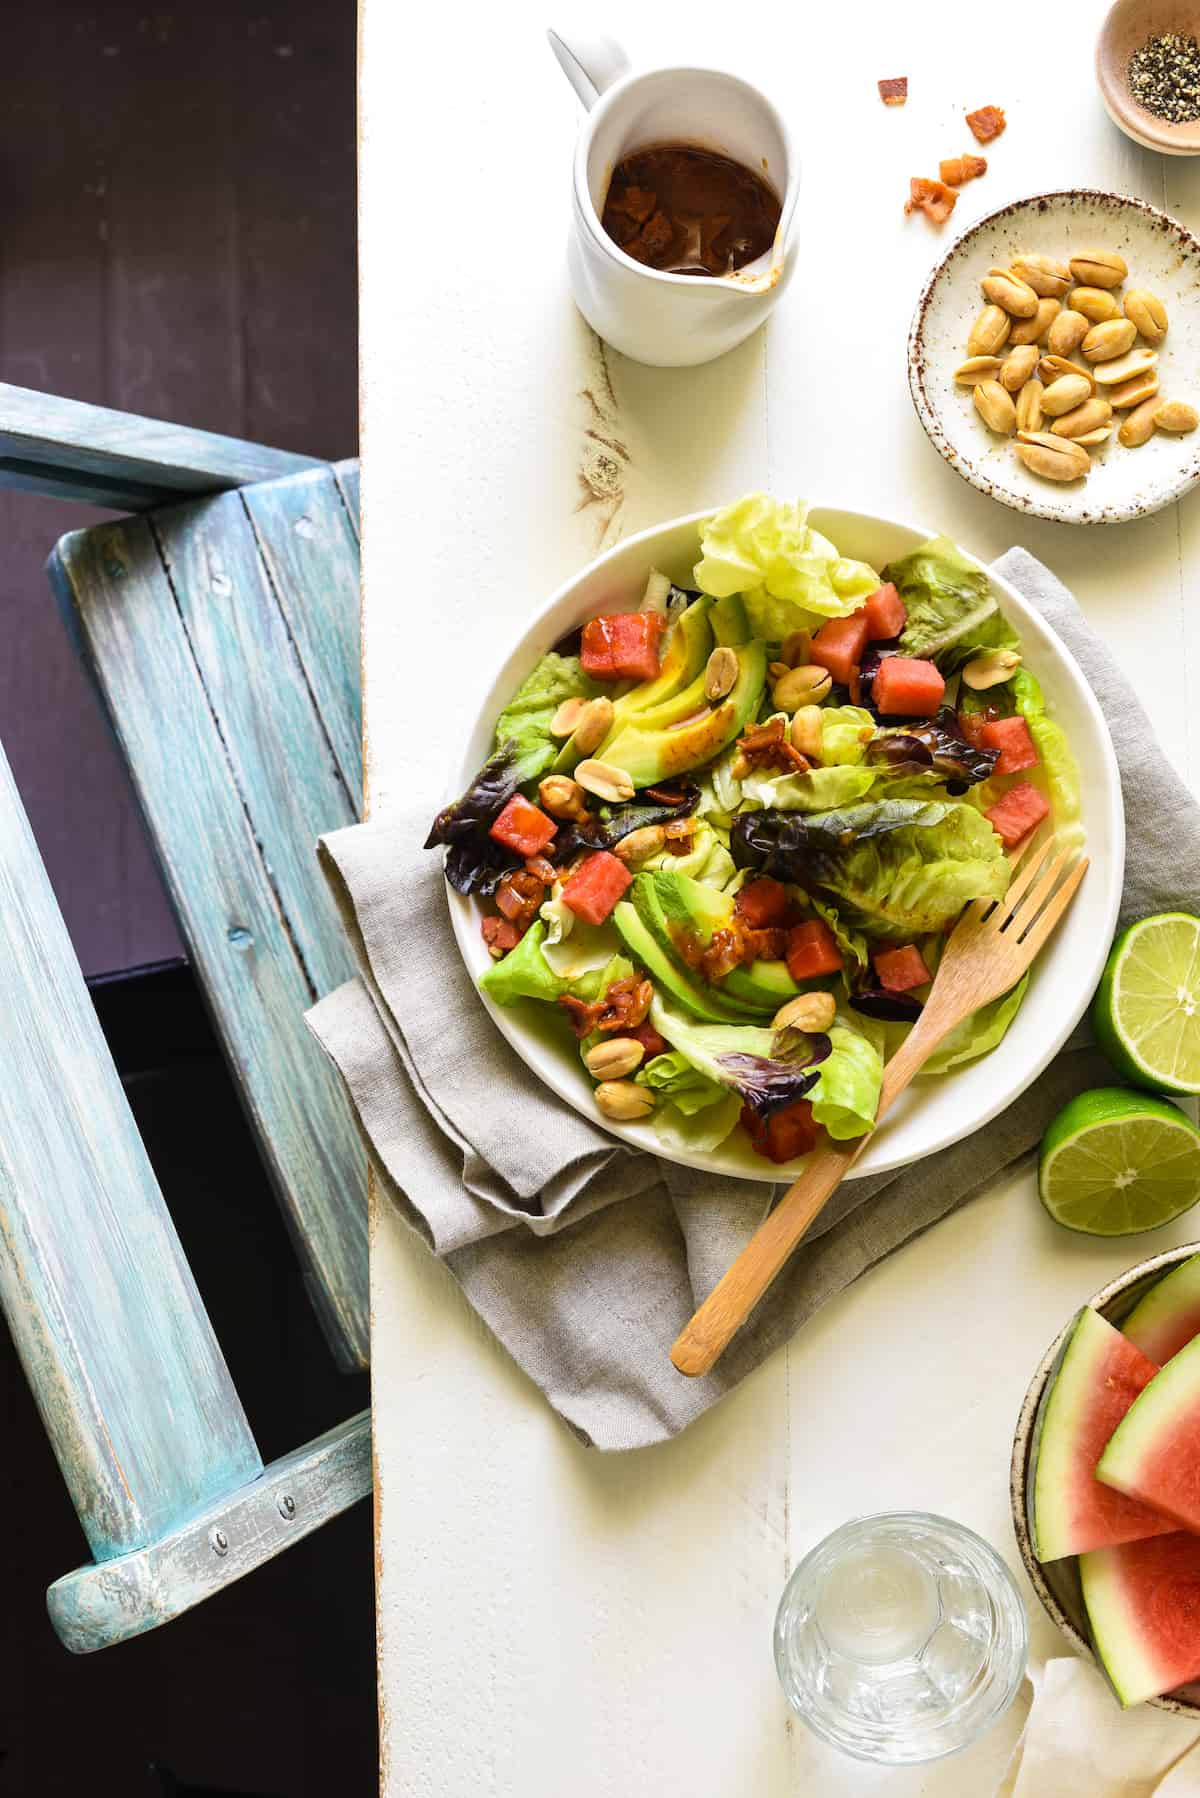 Watermelon and Avocado Salad with Warm Bacon Dressing - An irresistible sweet and savory summer salad! Butter lettuce, watermelon, avocado and peanuts are topped with an easy warm bacon dressing. | foxeslovelemons.com